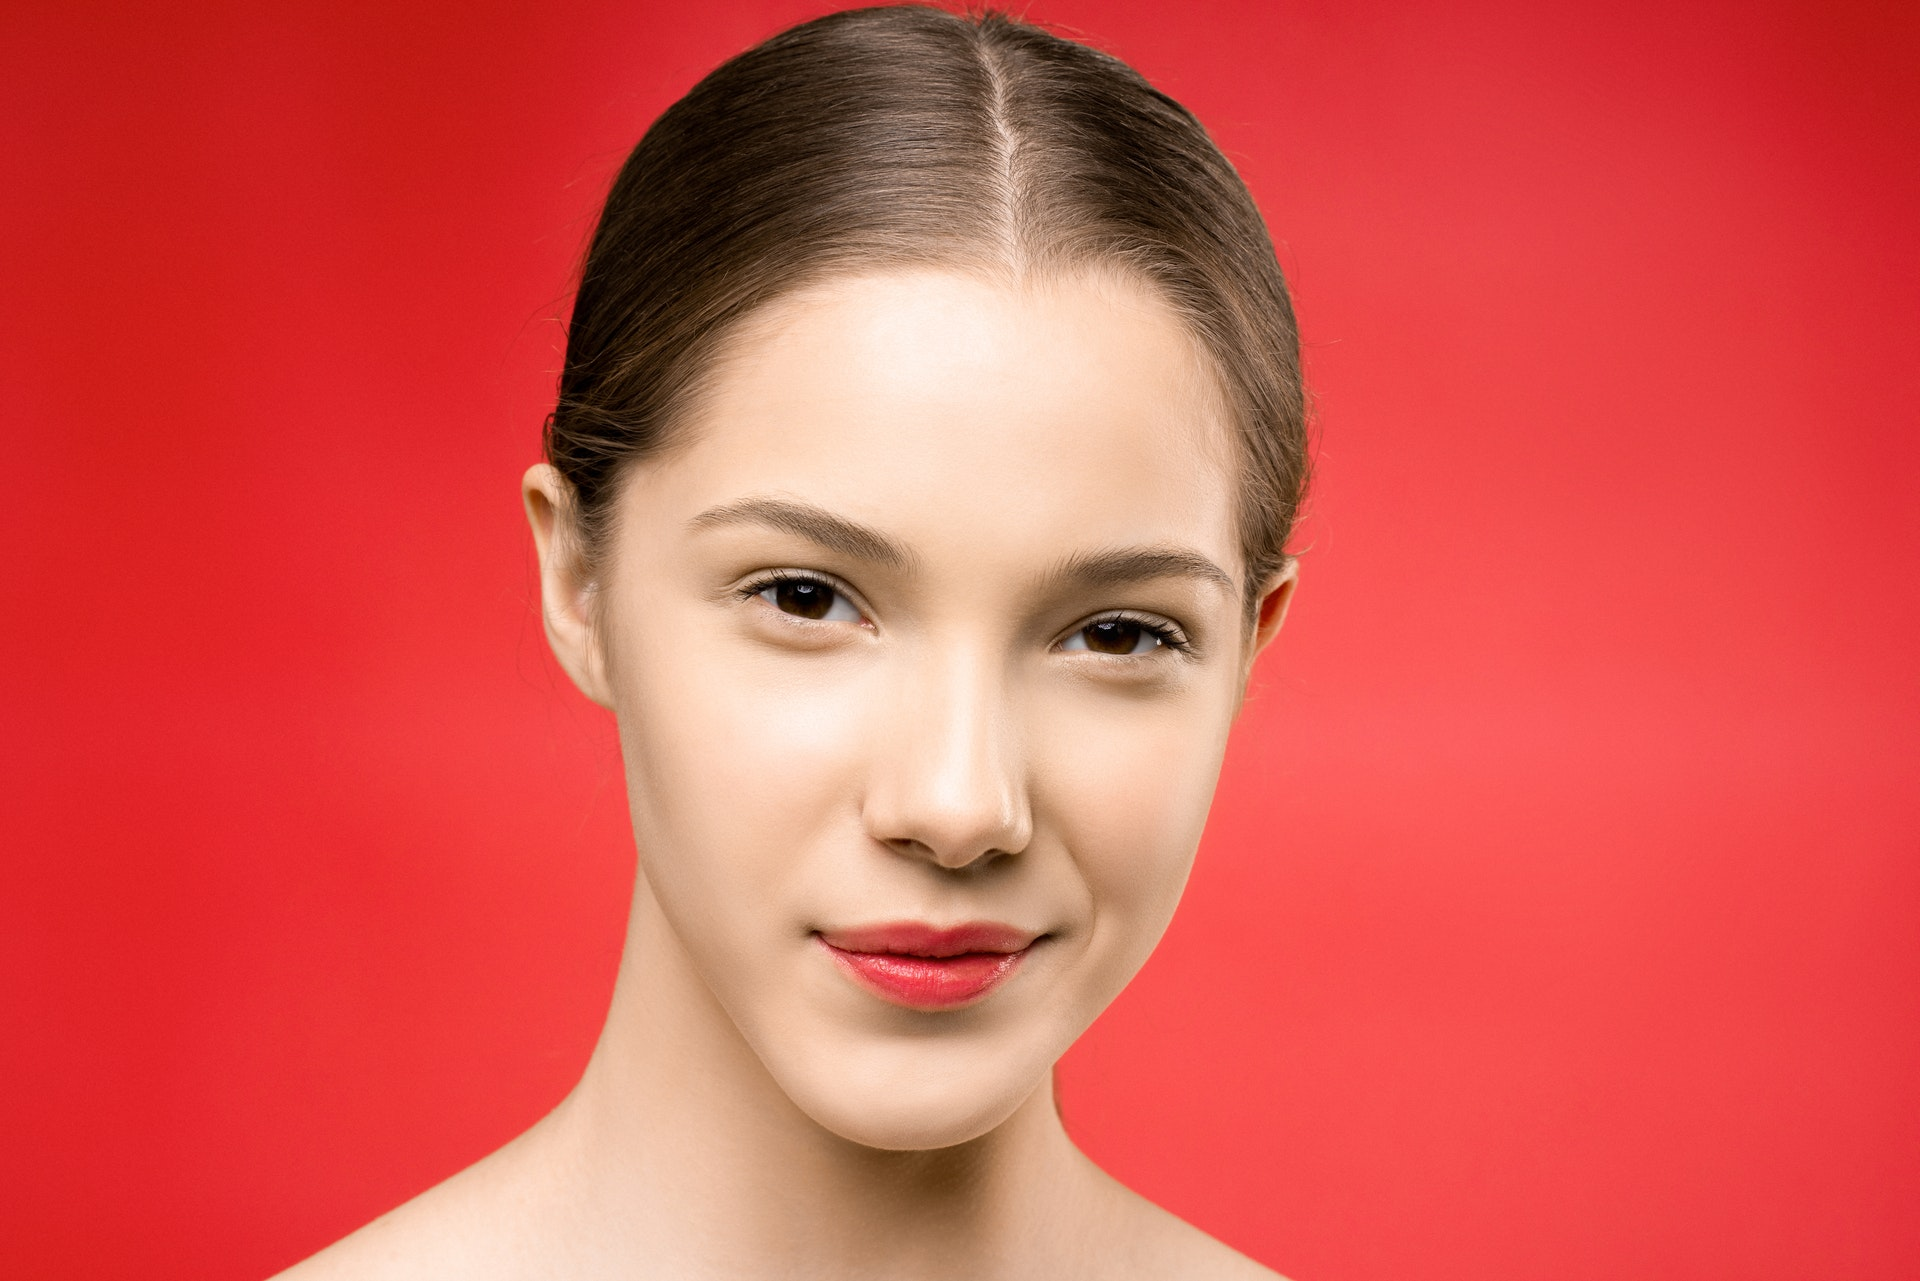 Read more about the article Rejuvenate Your Overall Appearance with BOTOX